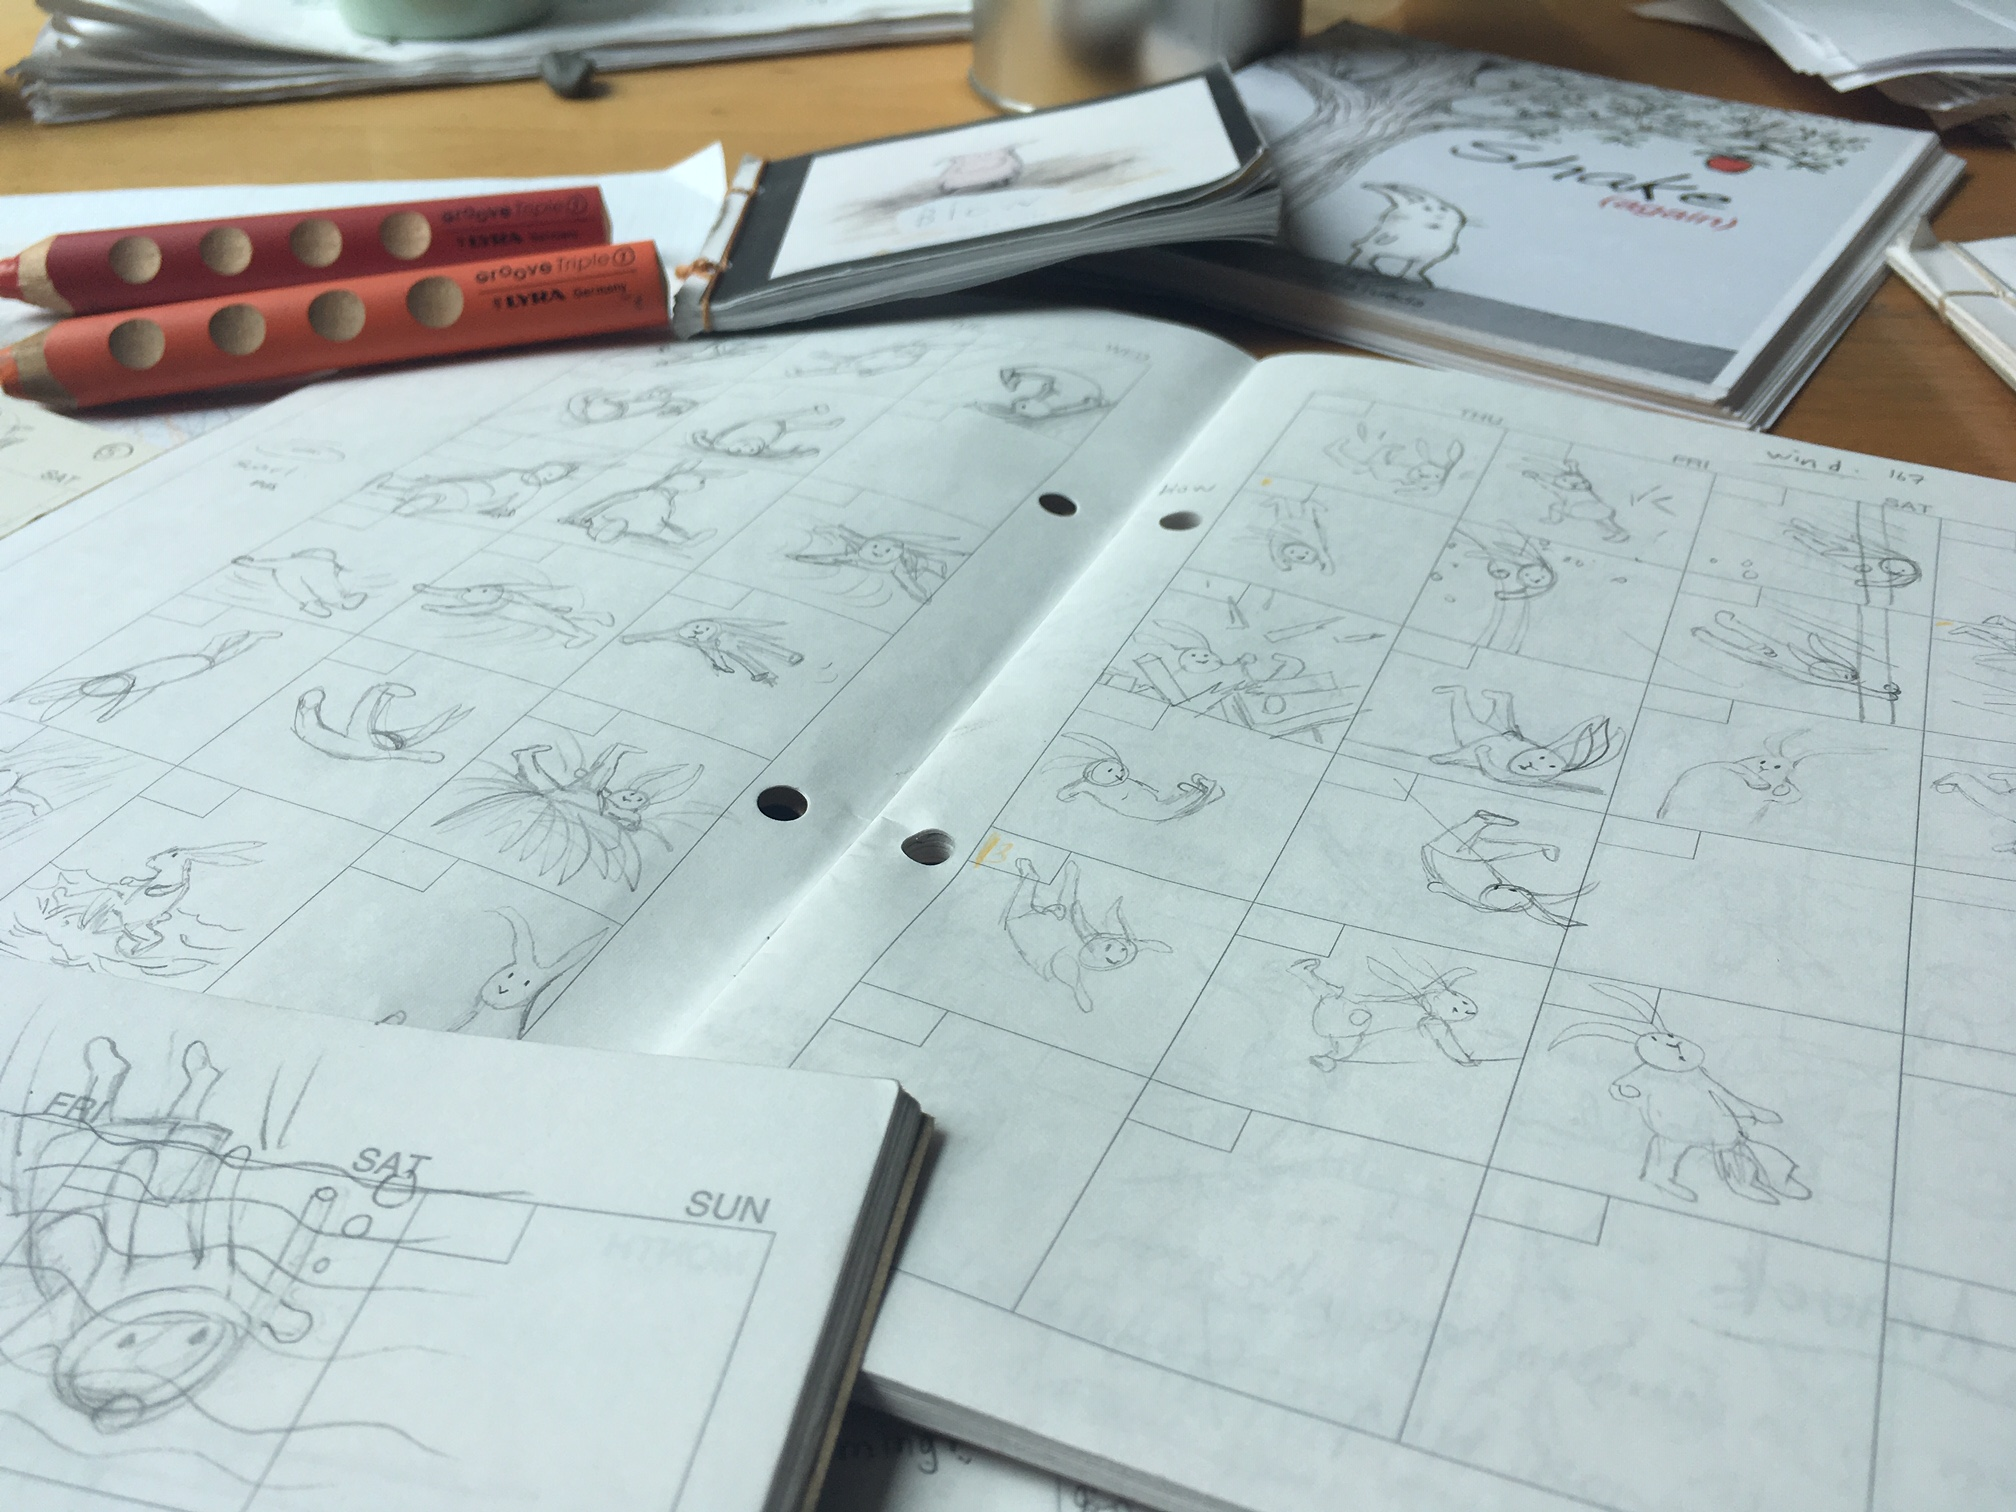 It all begins with a storyboard.